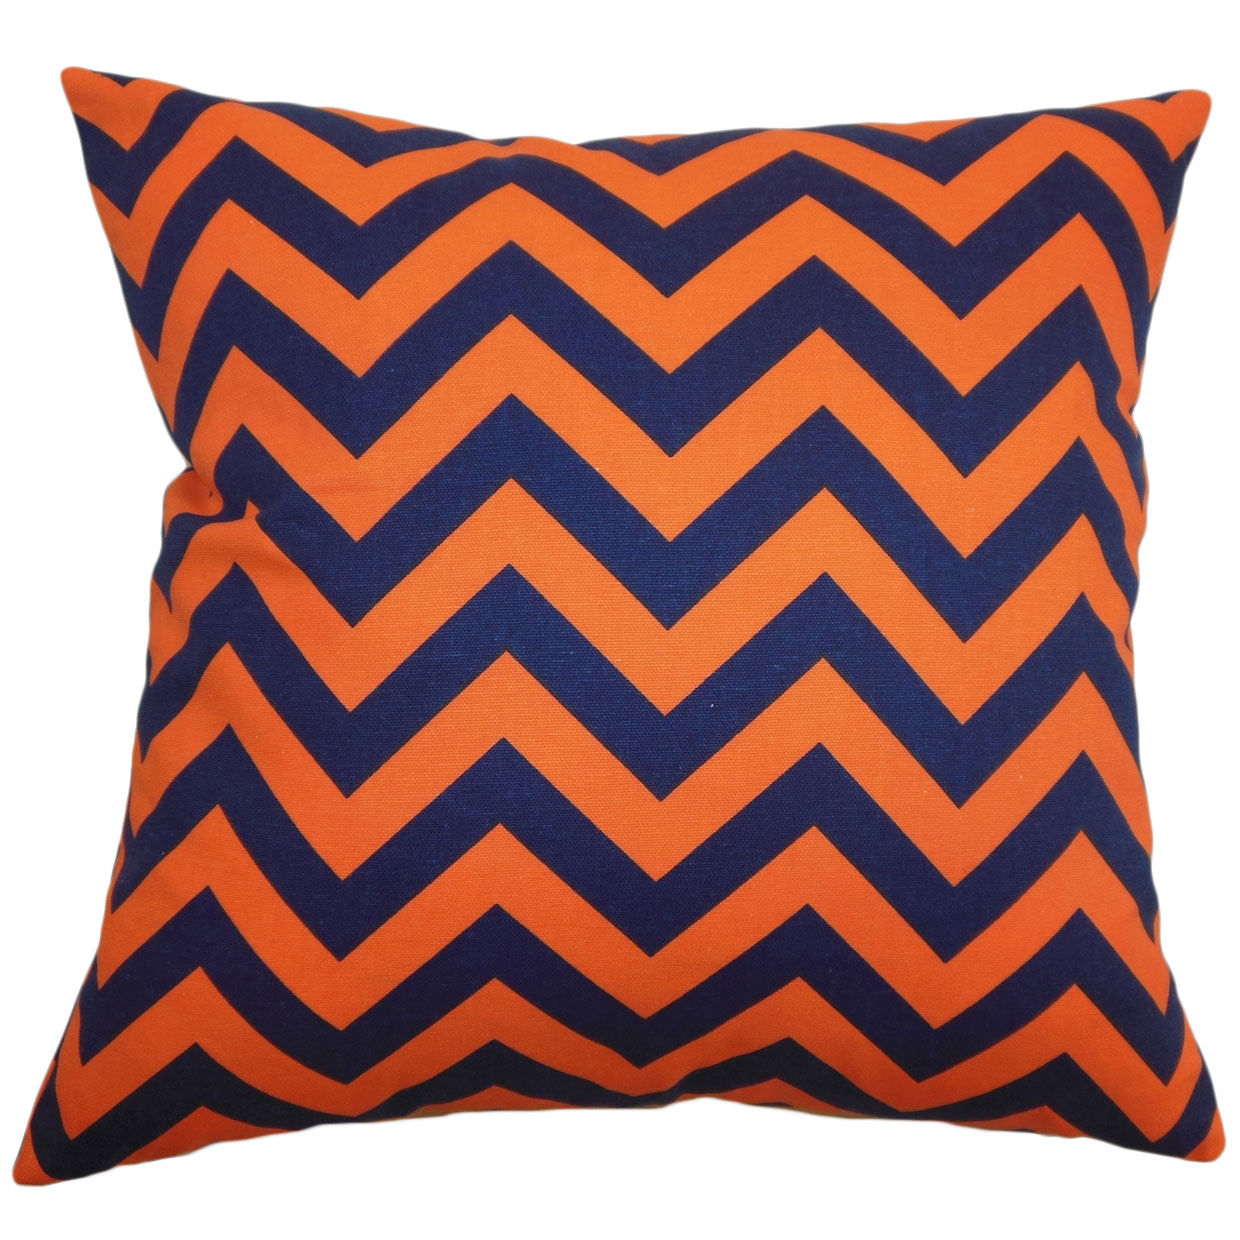 The Pillow Collection Xayabury Zigzag Pillow 20 by 20 Yellow//Black